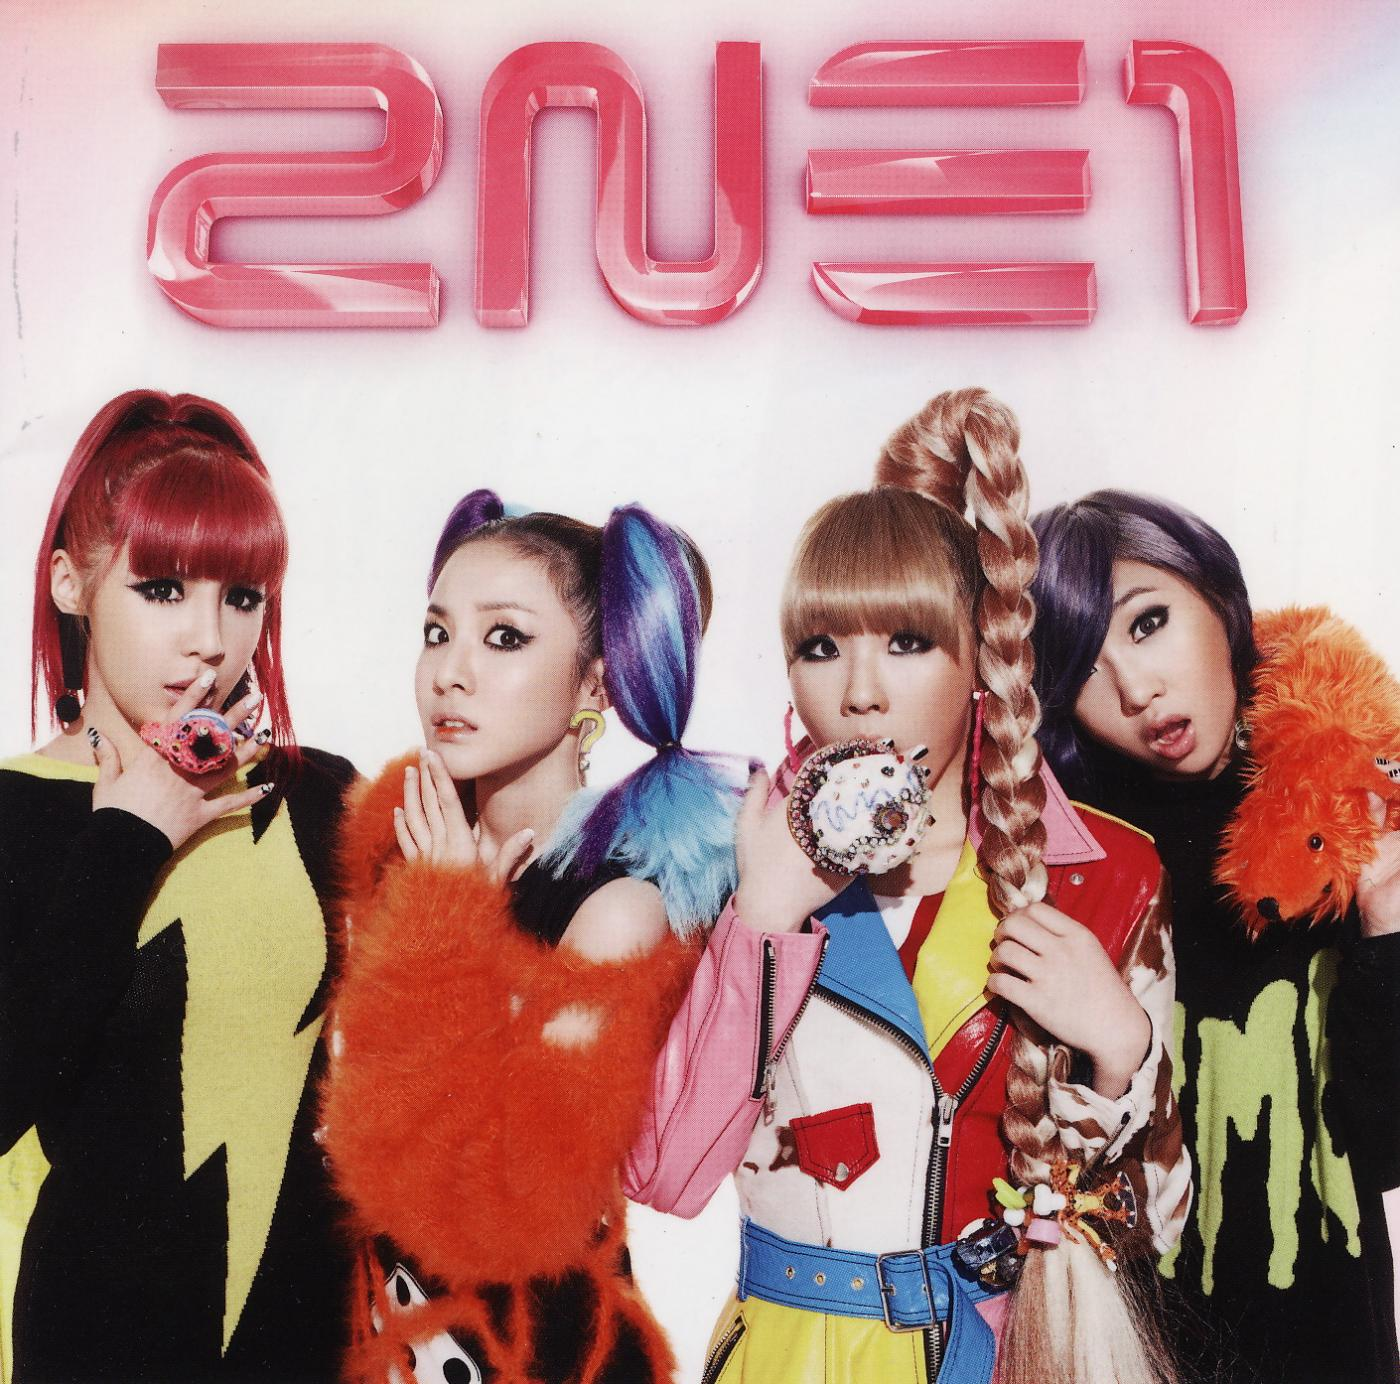 2ne1 Wallpaper Hd Blackjacks Images 2ne1 Go Away Japan Hd Wallpaper And